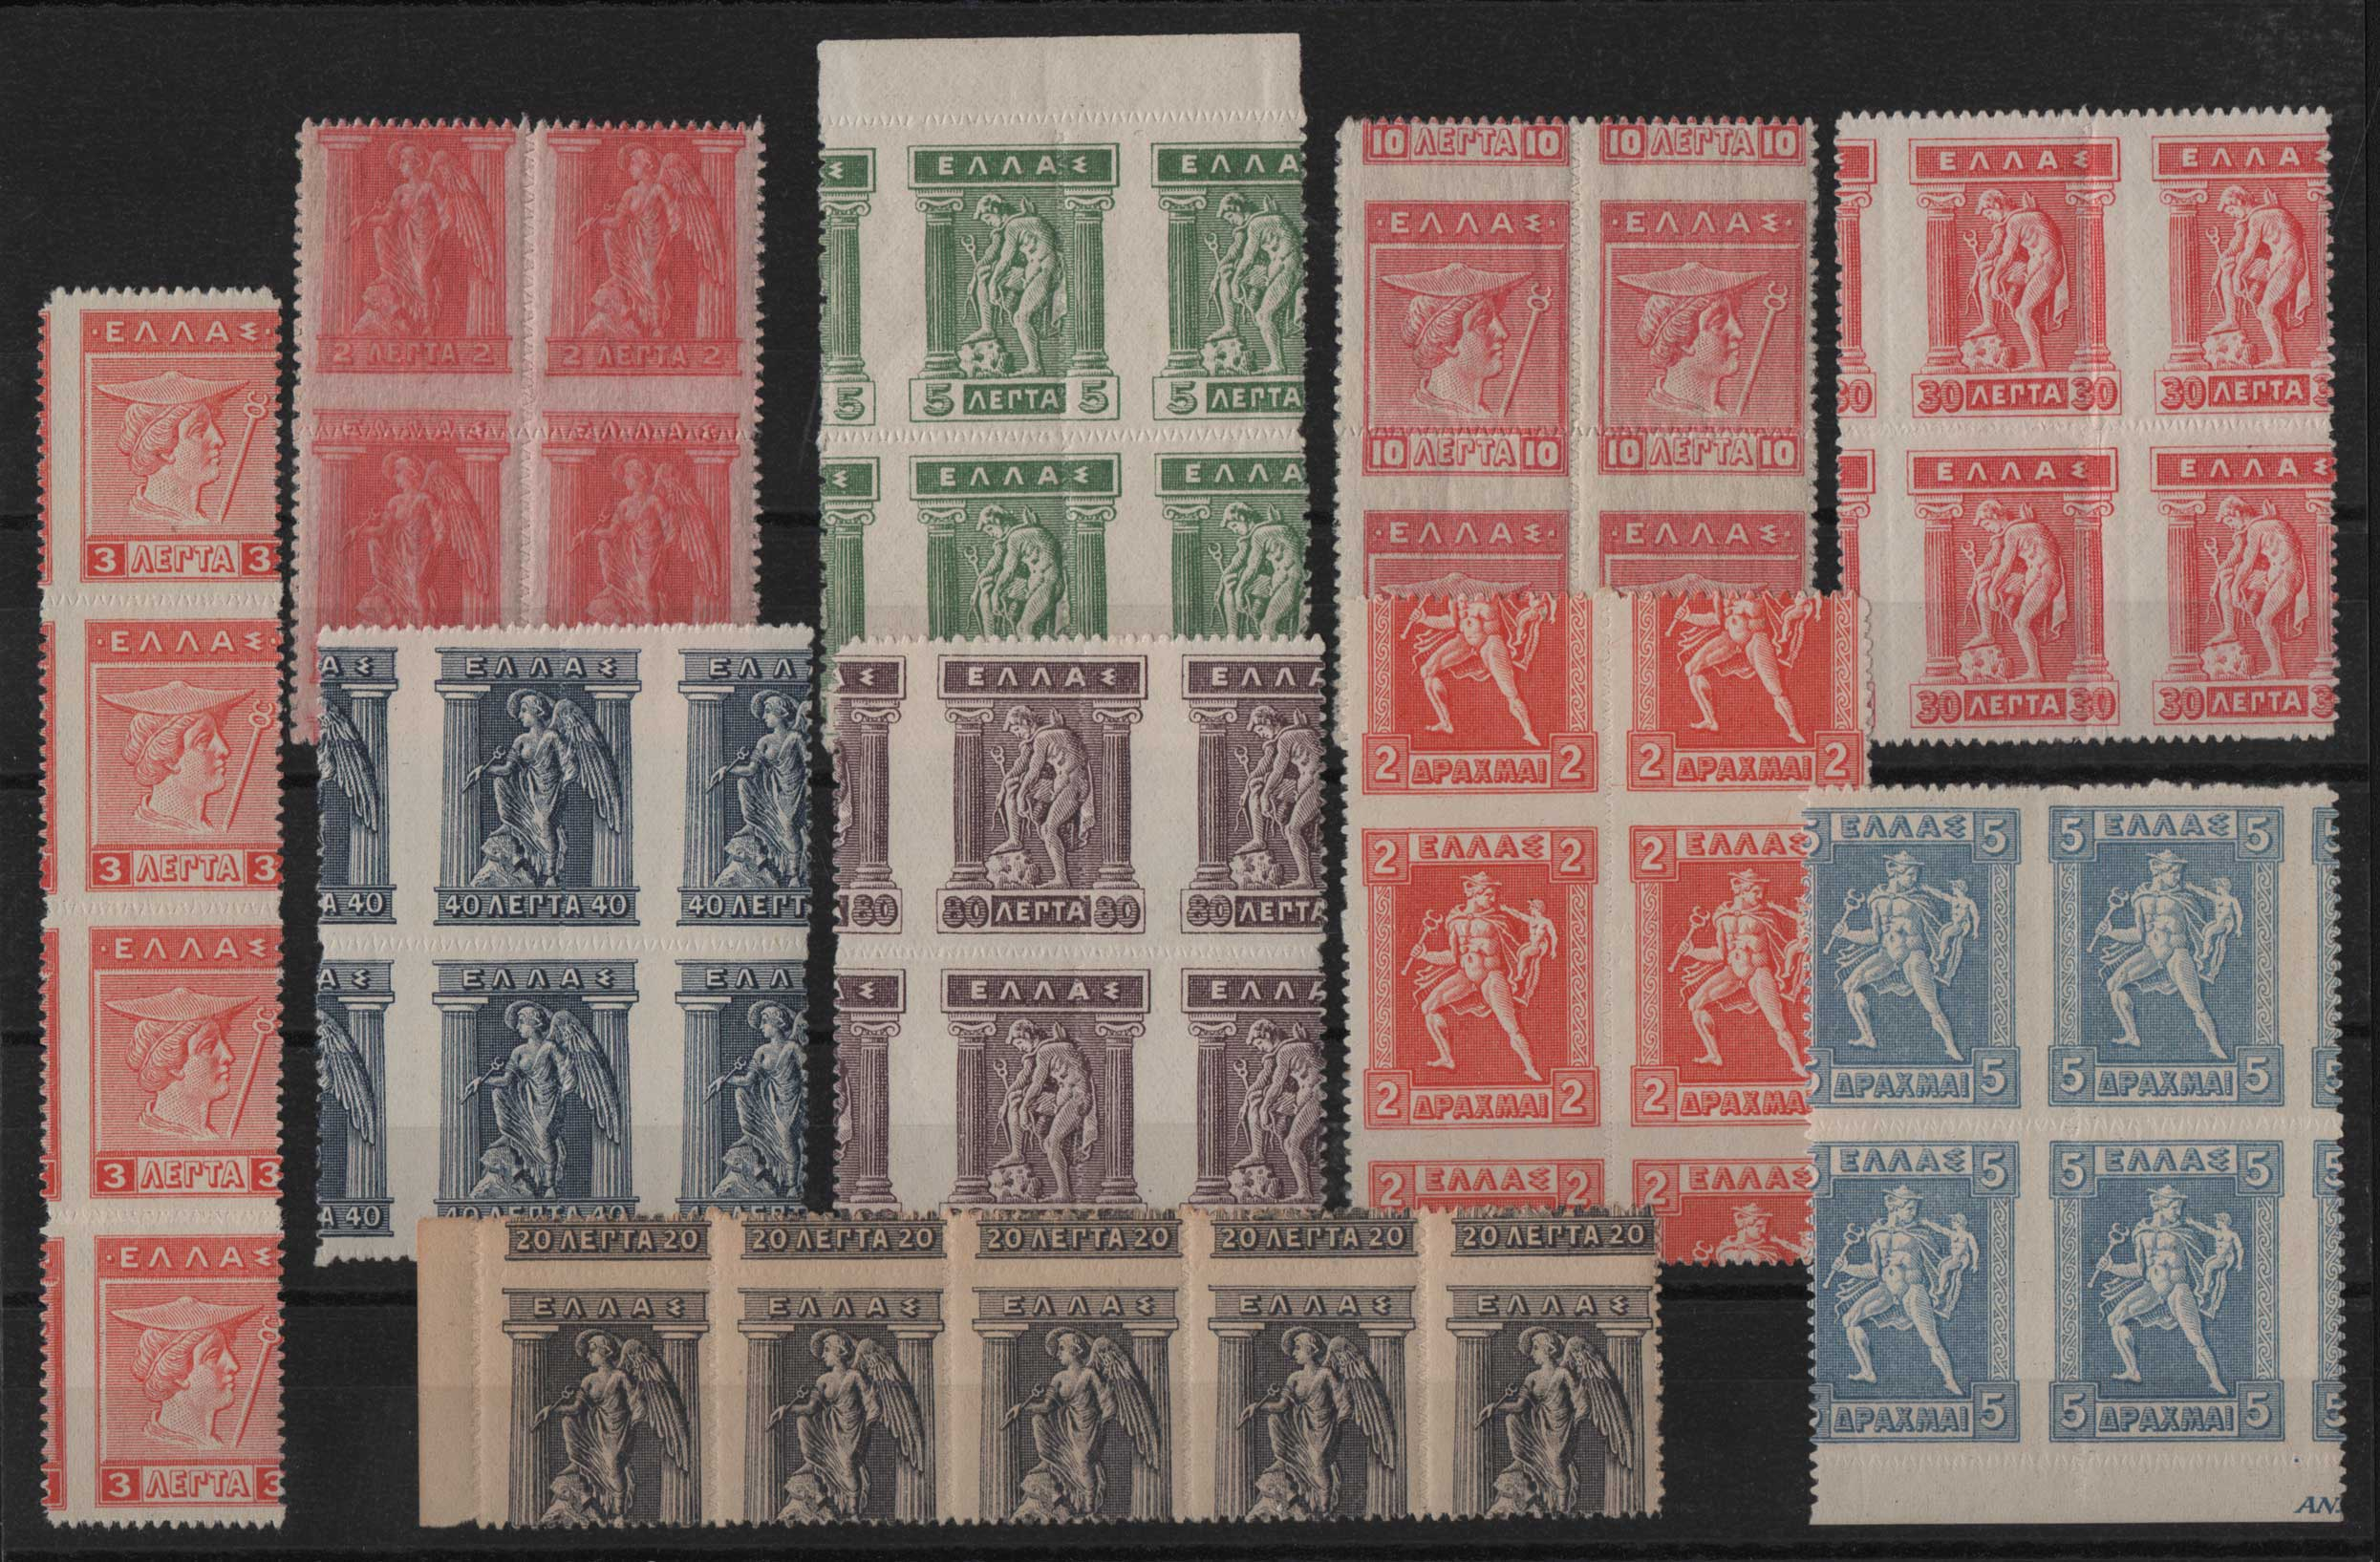 Lot 614 - -  1911 - 1923 ENGRAVED & LITHOGRAPHIC ISSUES -  Athens Auctions Public Auction 83 General Stamp Sale